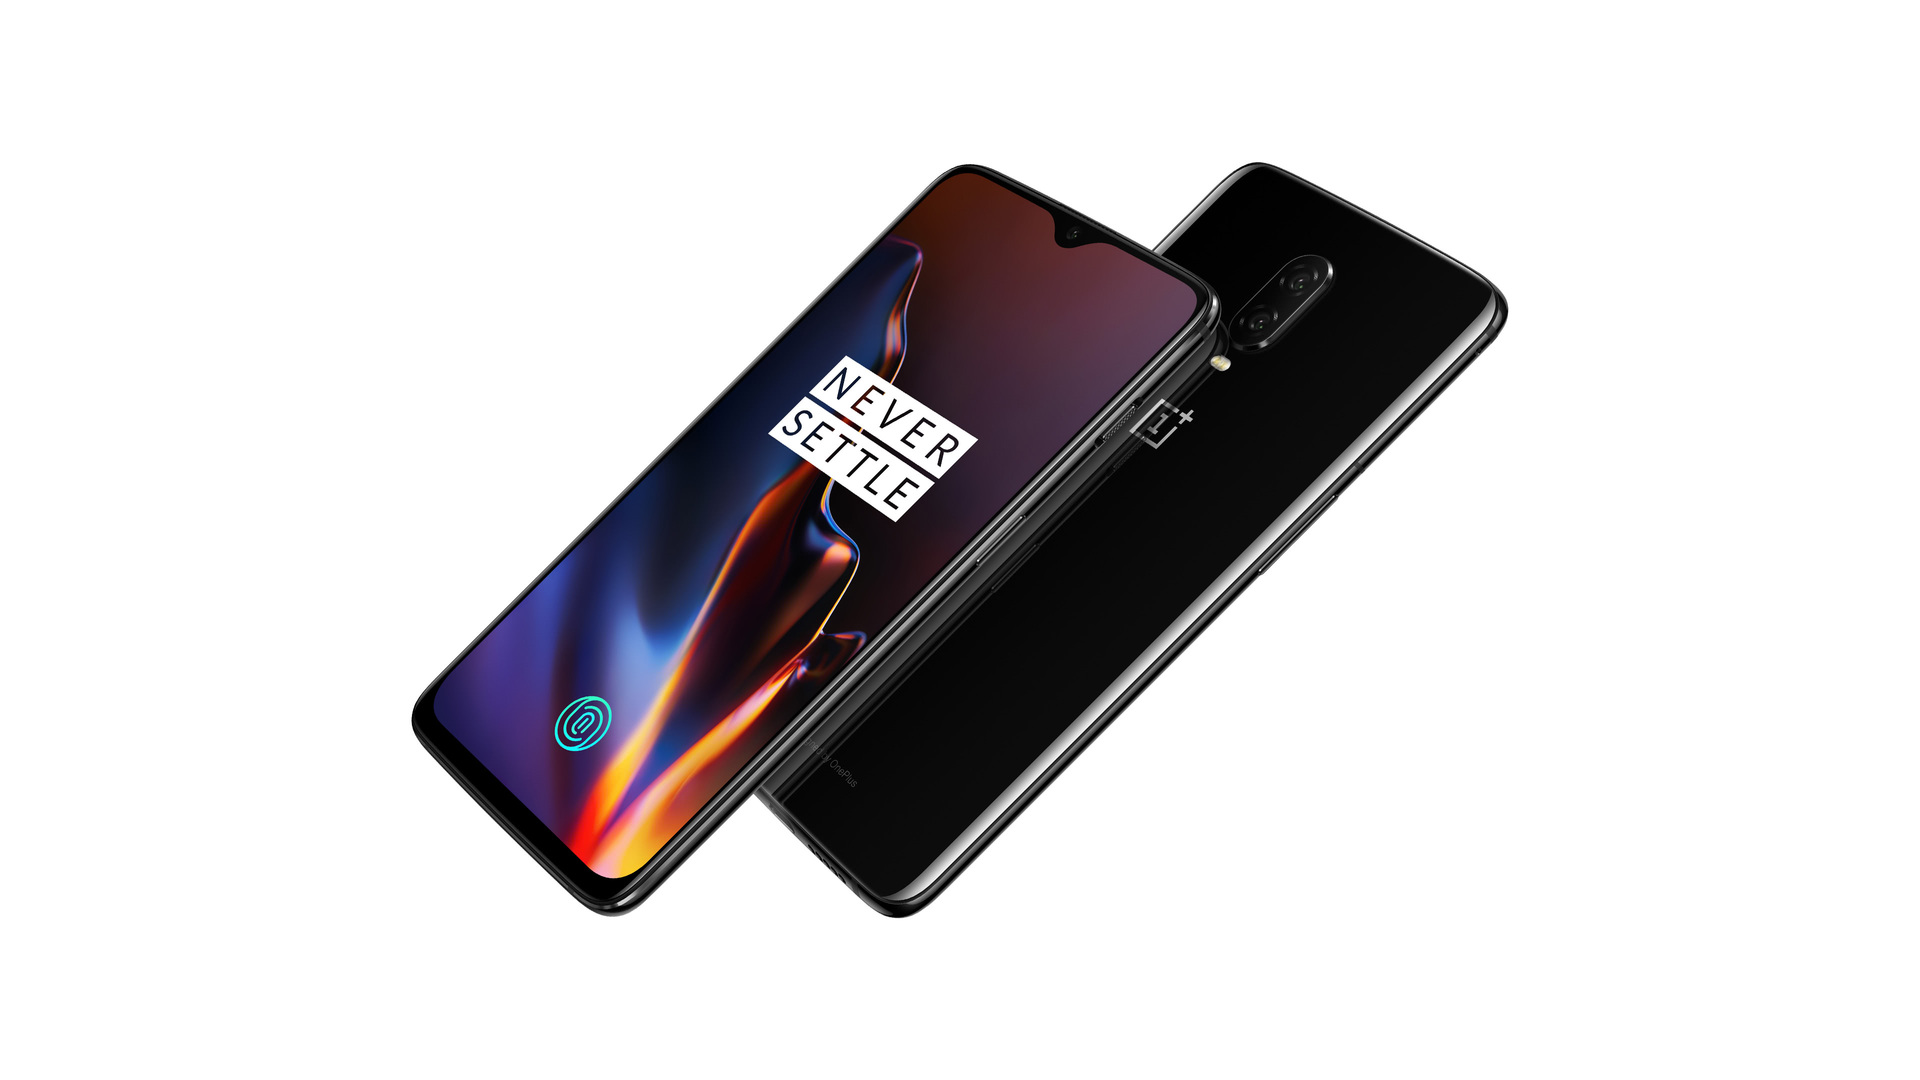 OnePlus 6T Android Phone